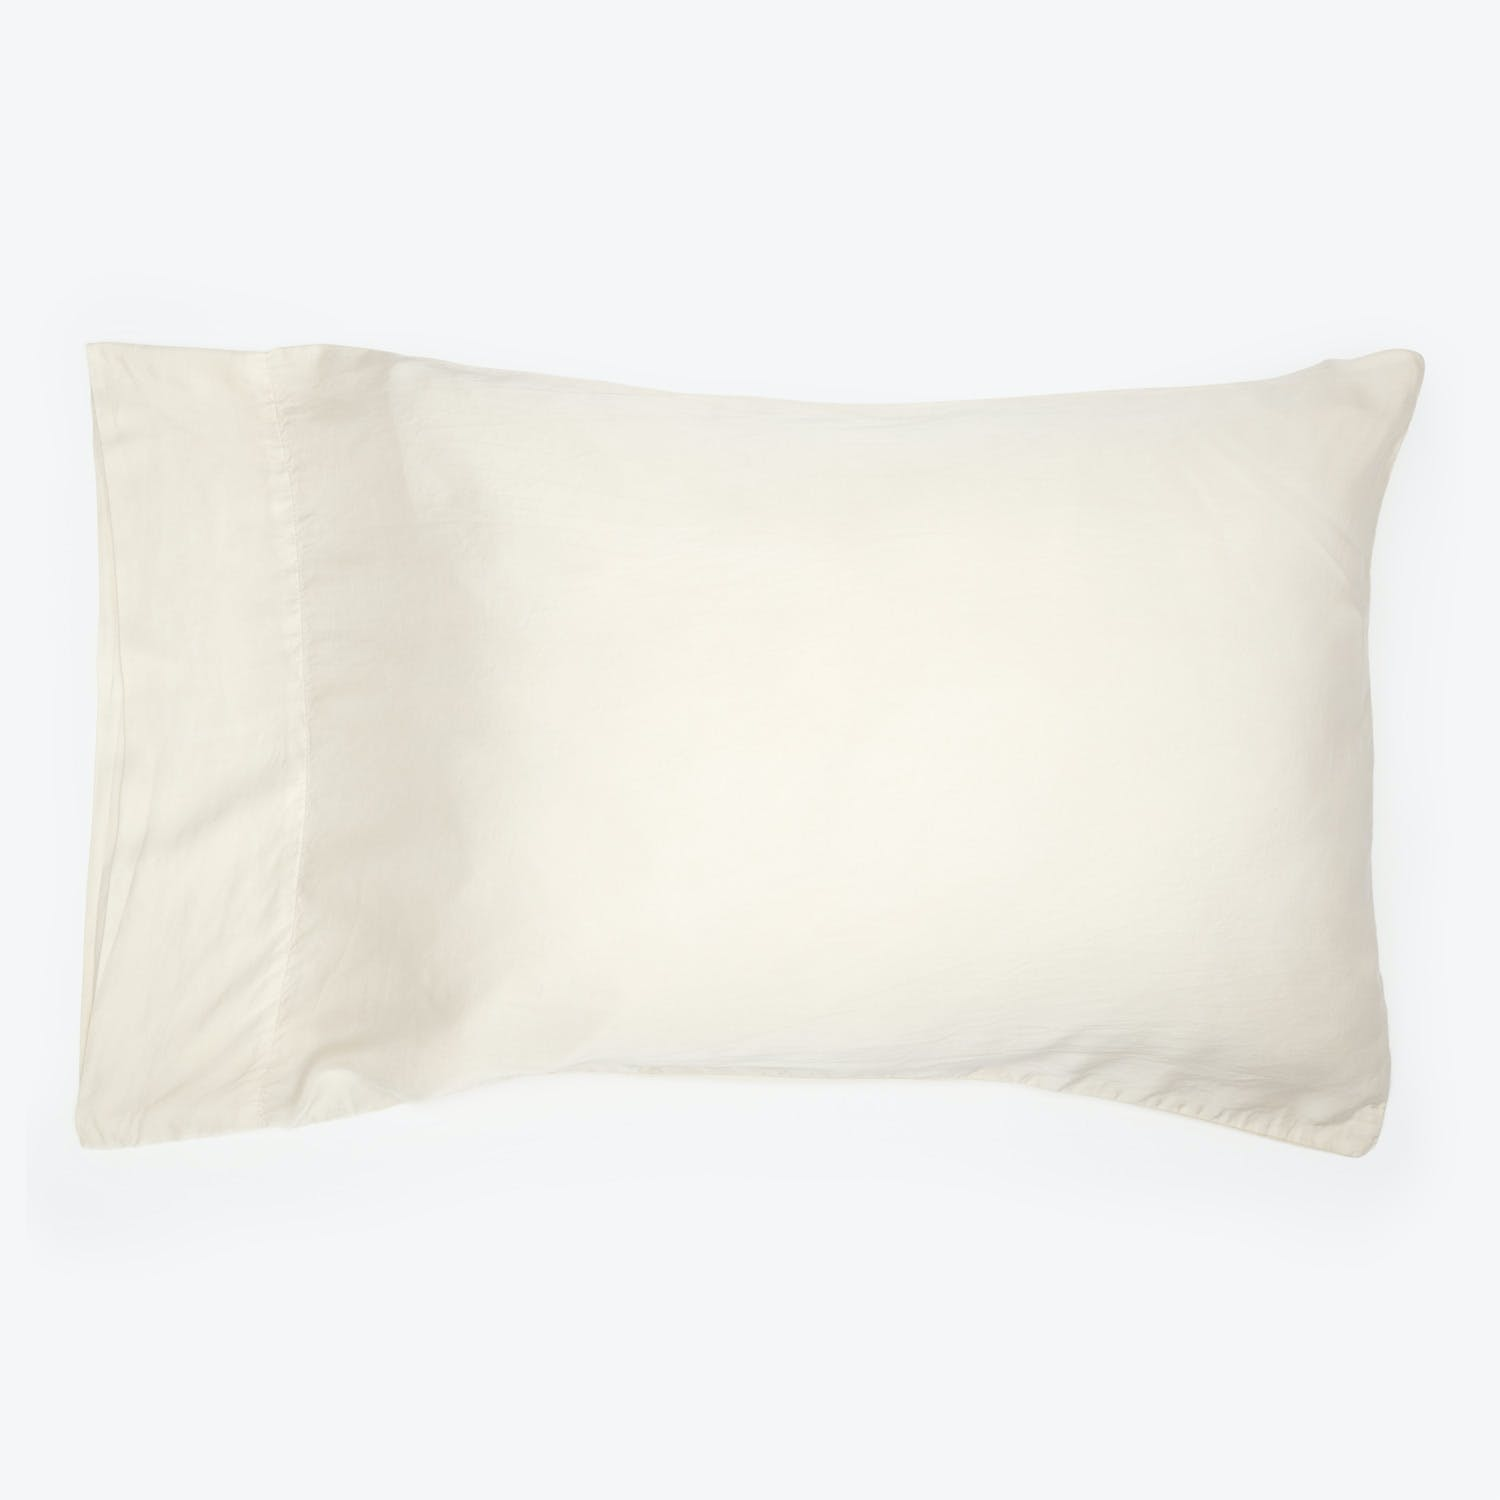 Product Image - Bella Notte Madera Luxe Pillowcase Parchment